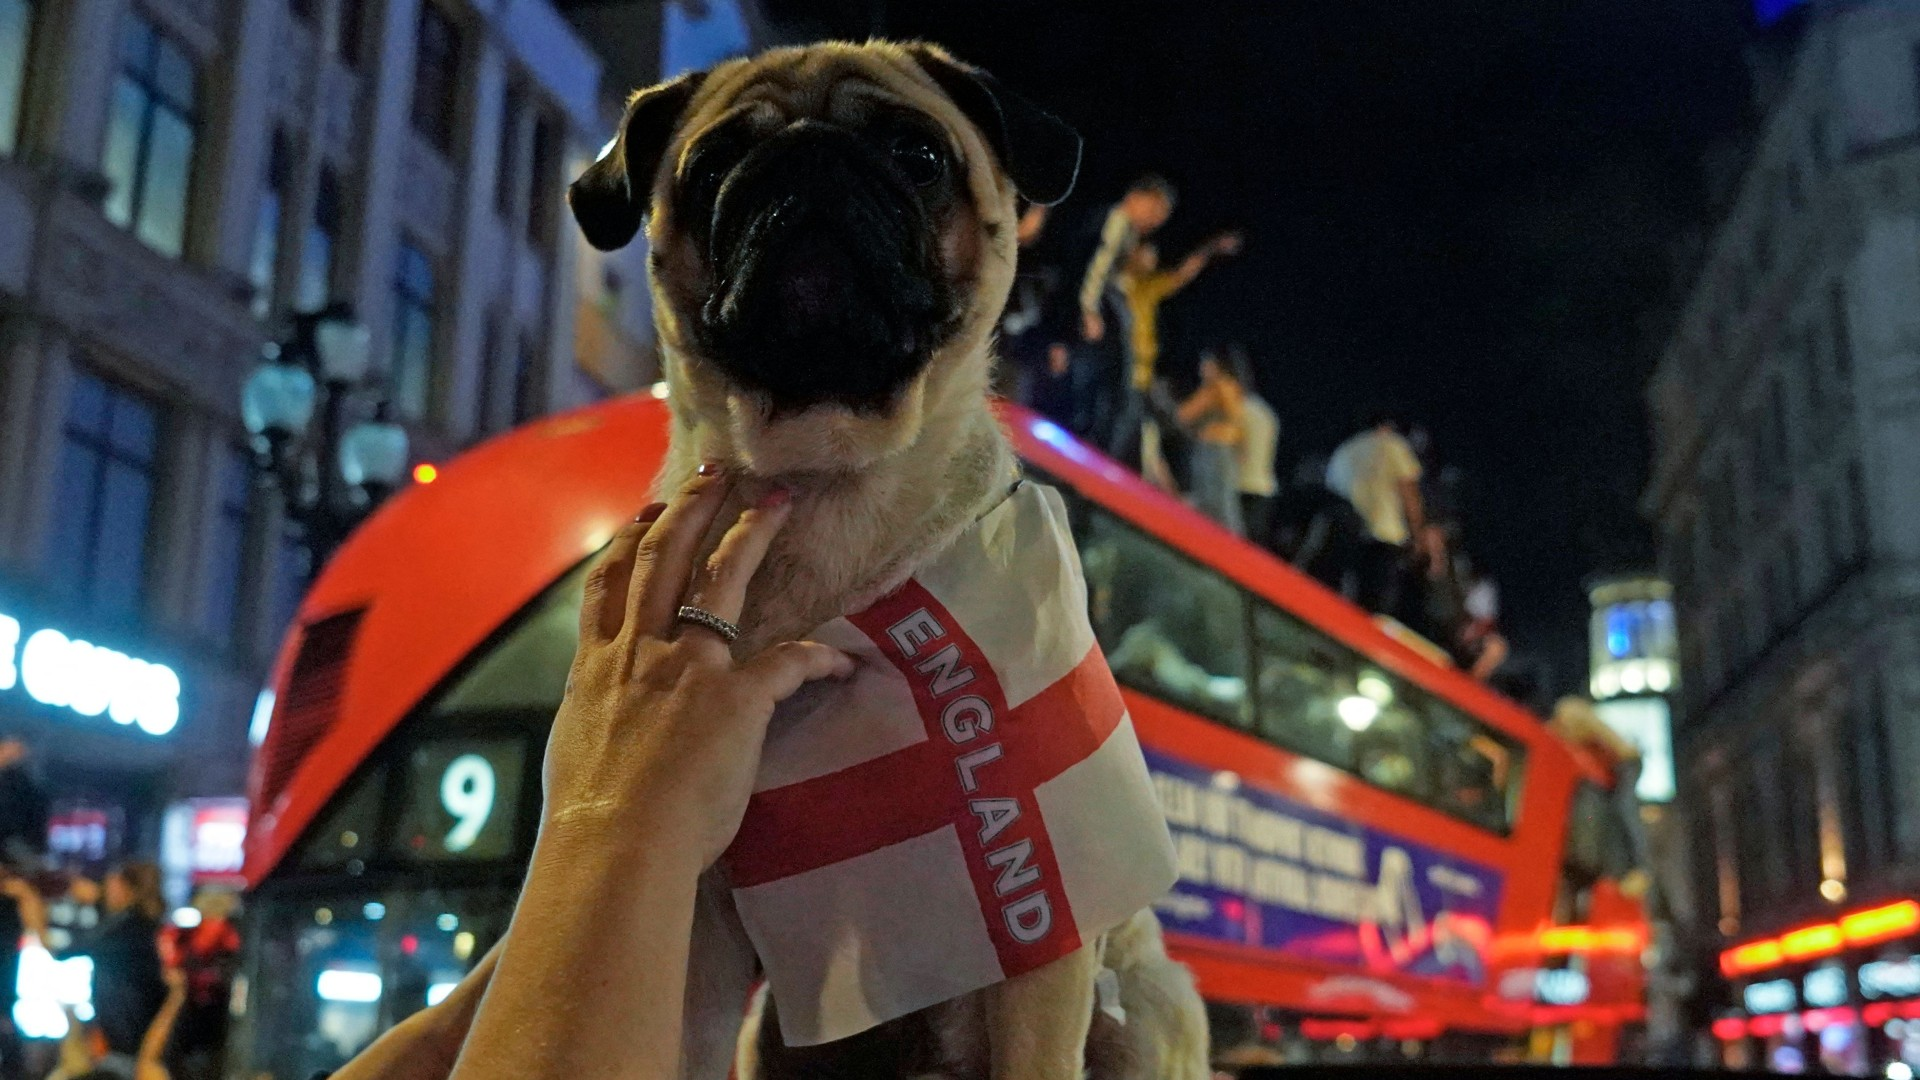 It's coming home! England fans & players celebrate reaching first final since 1966